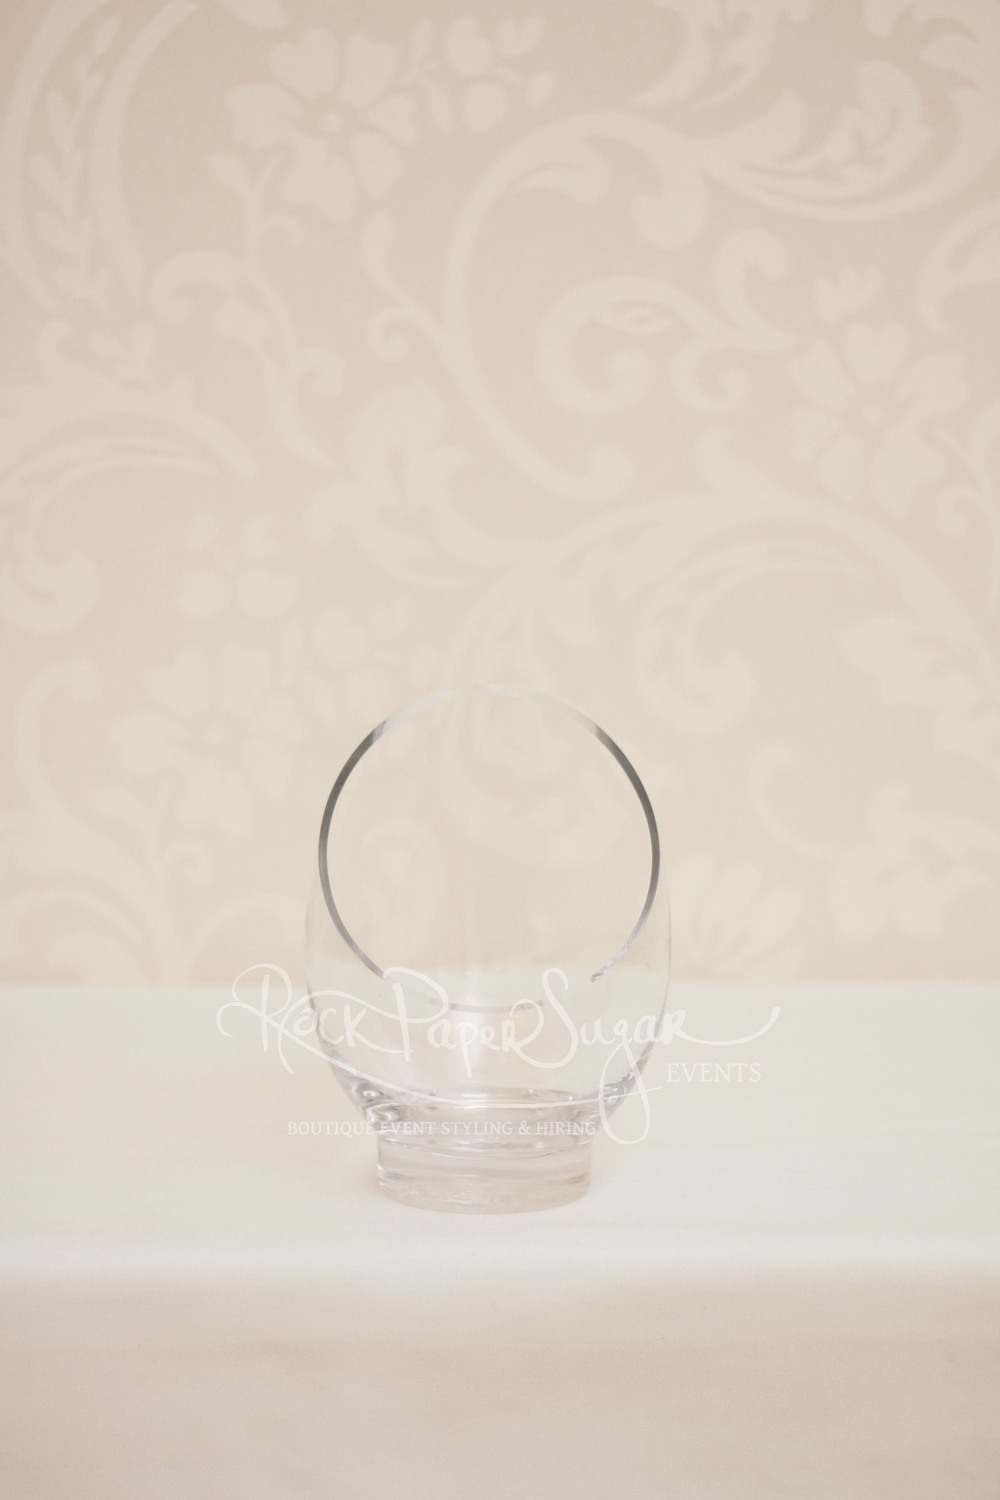 Rock Paper Sugar Events Glassware 013.jpg